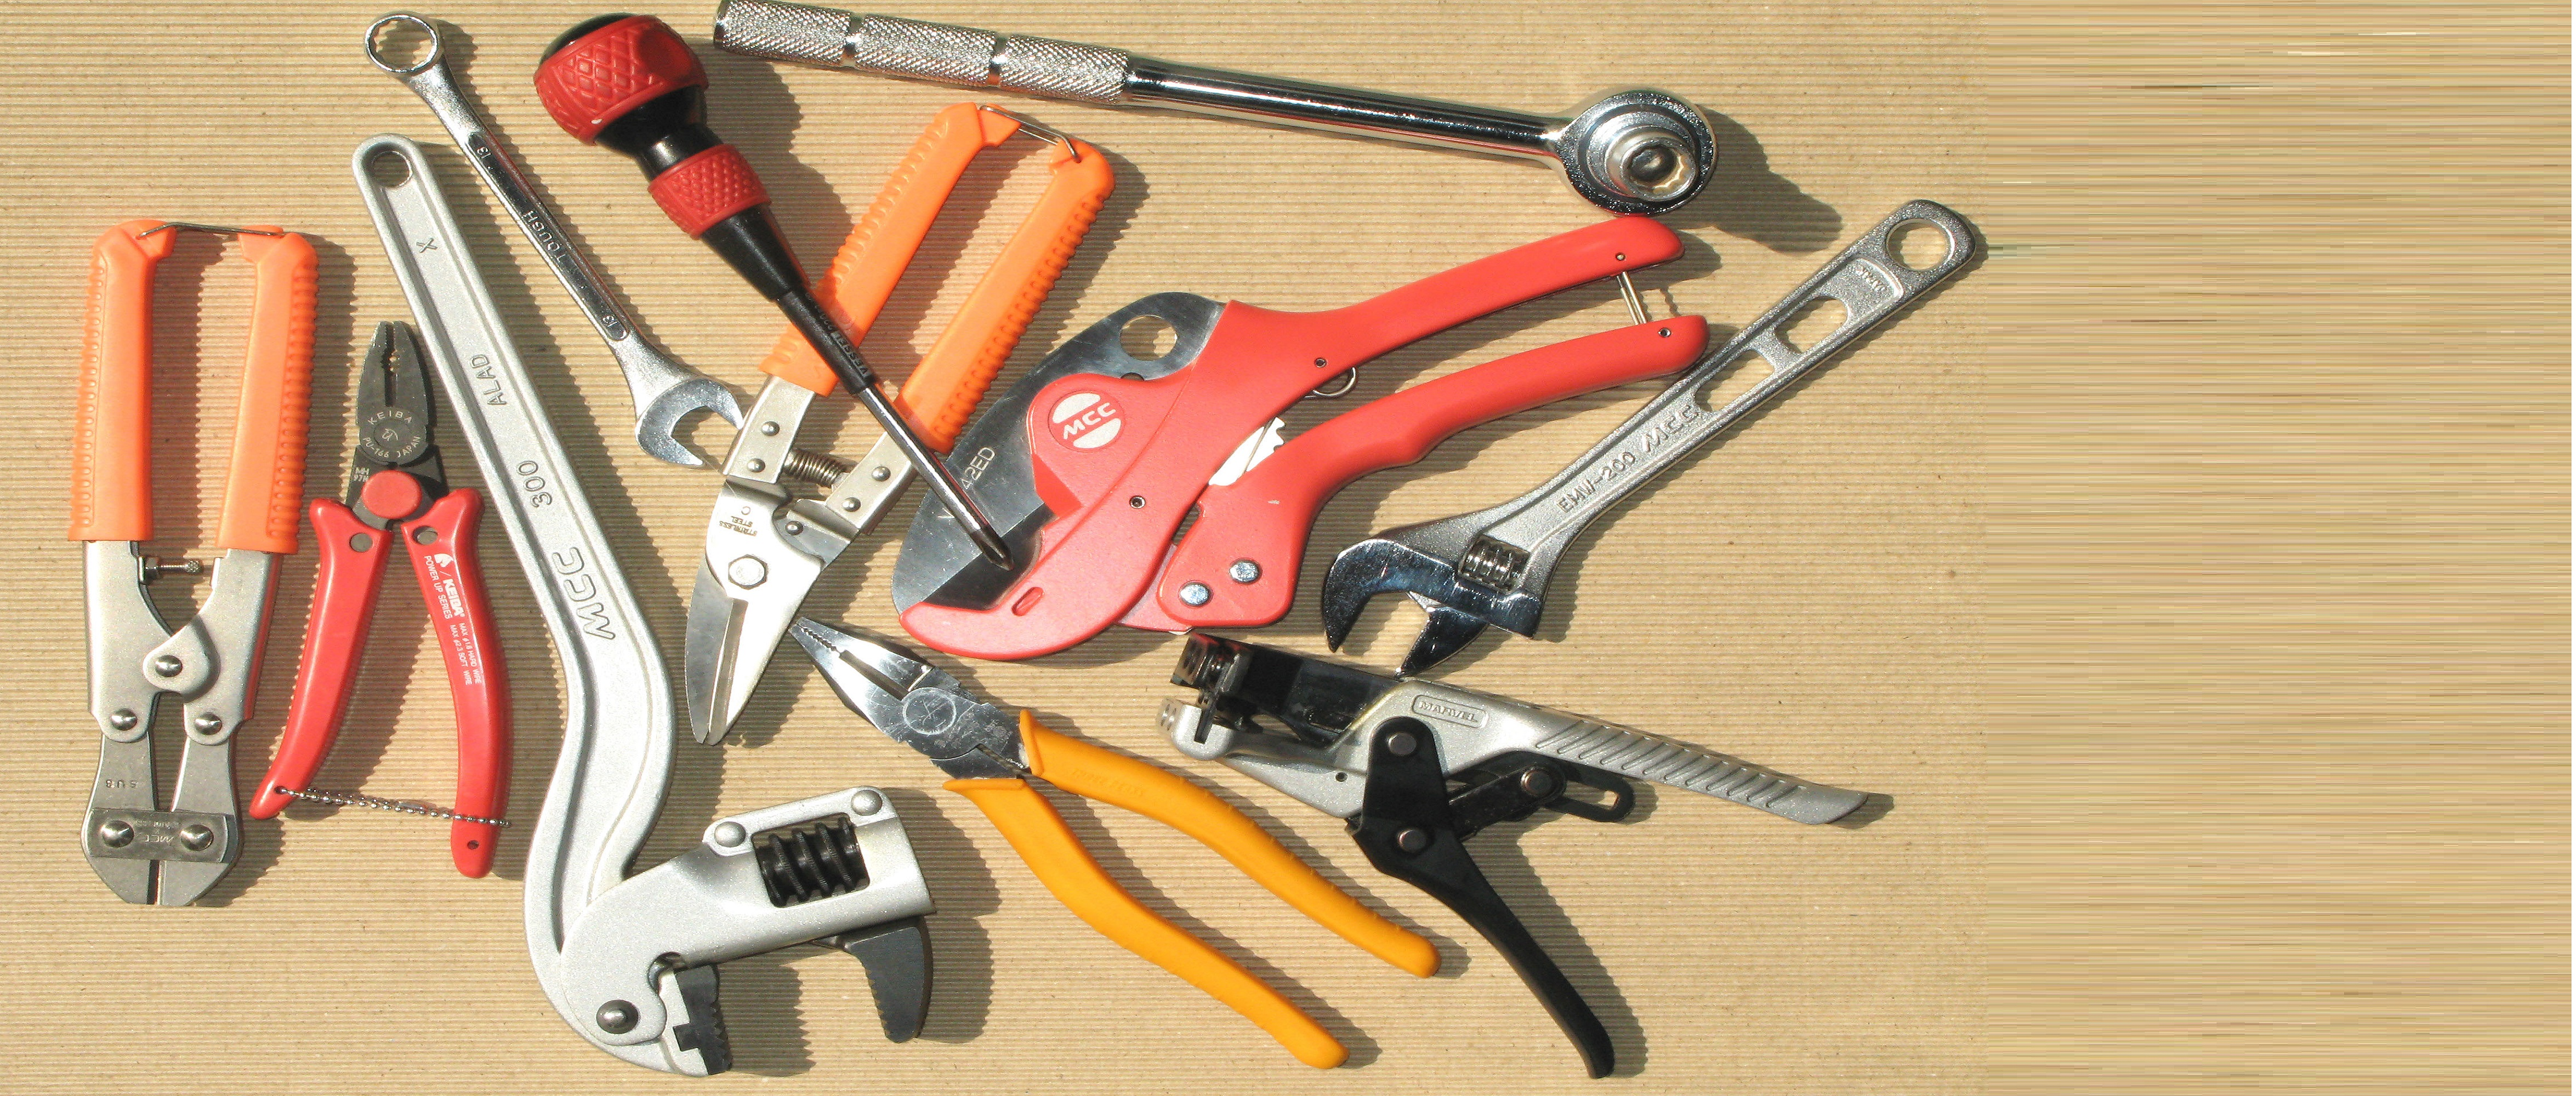 Best Hand Tools Brand Review